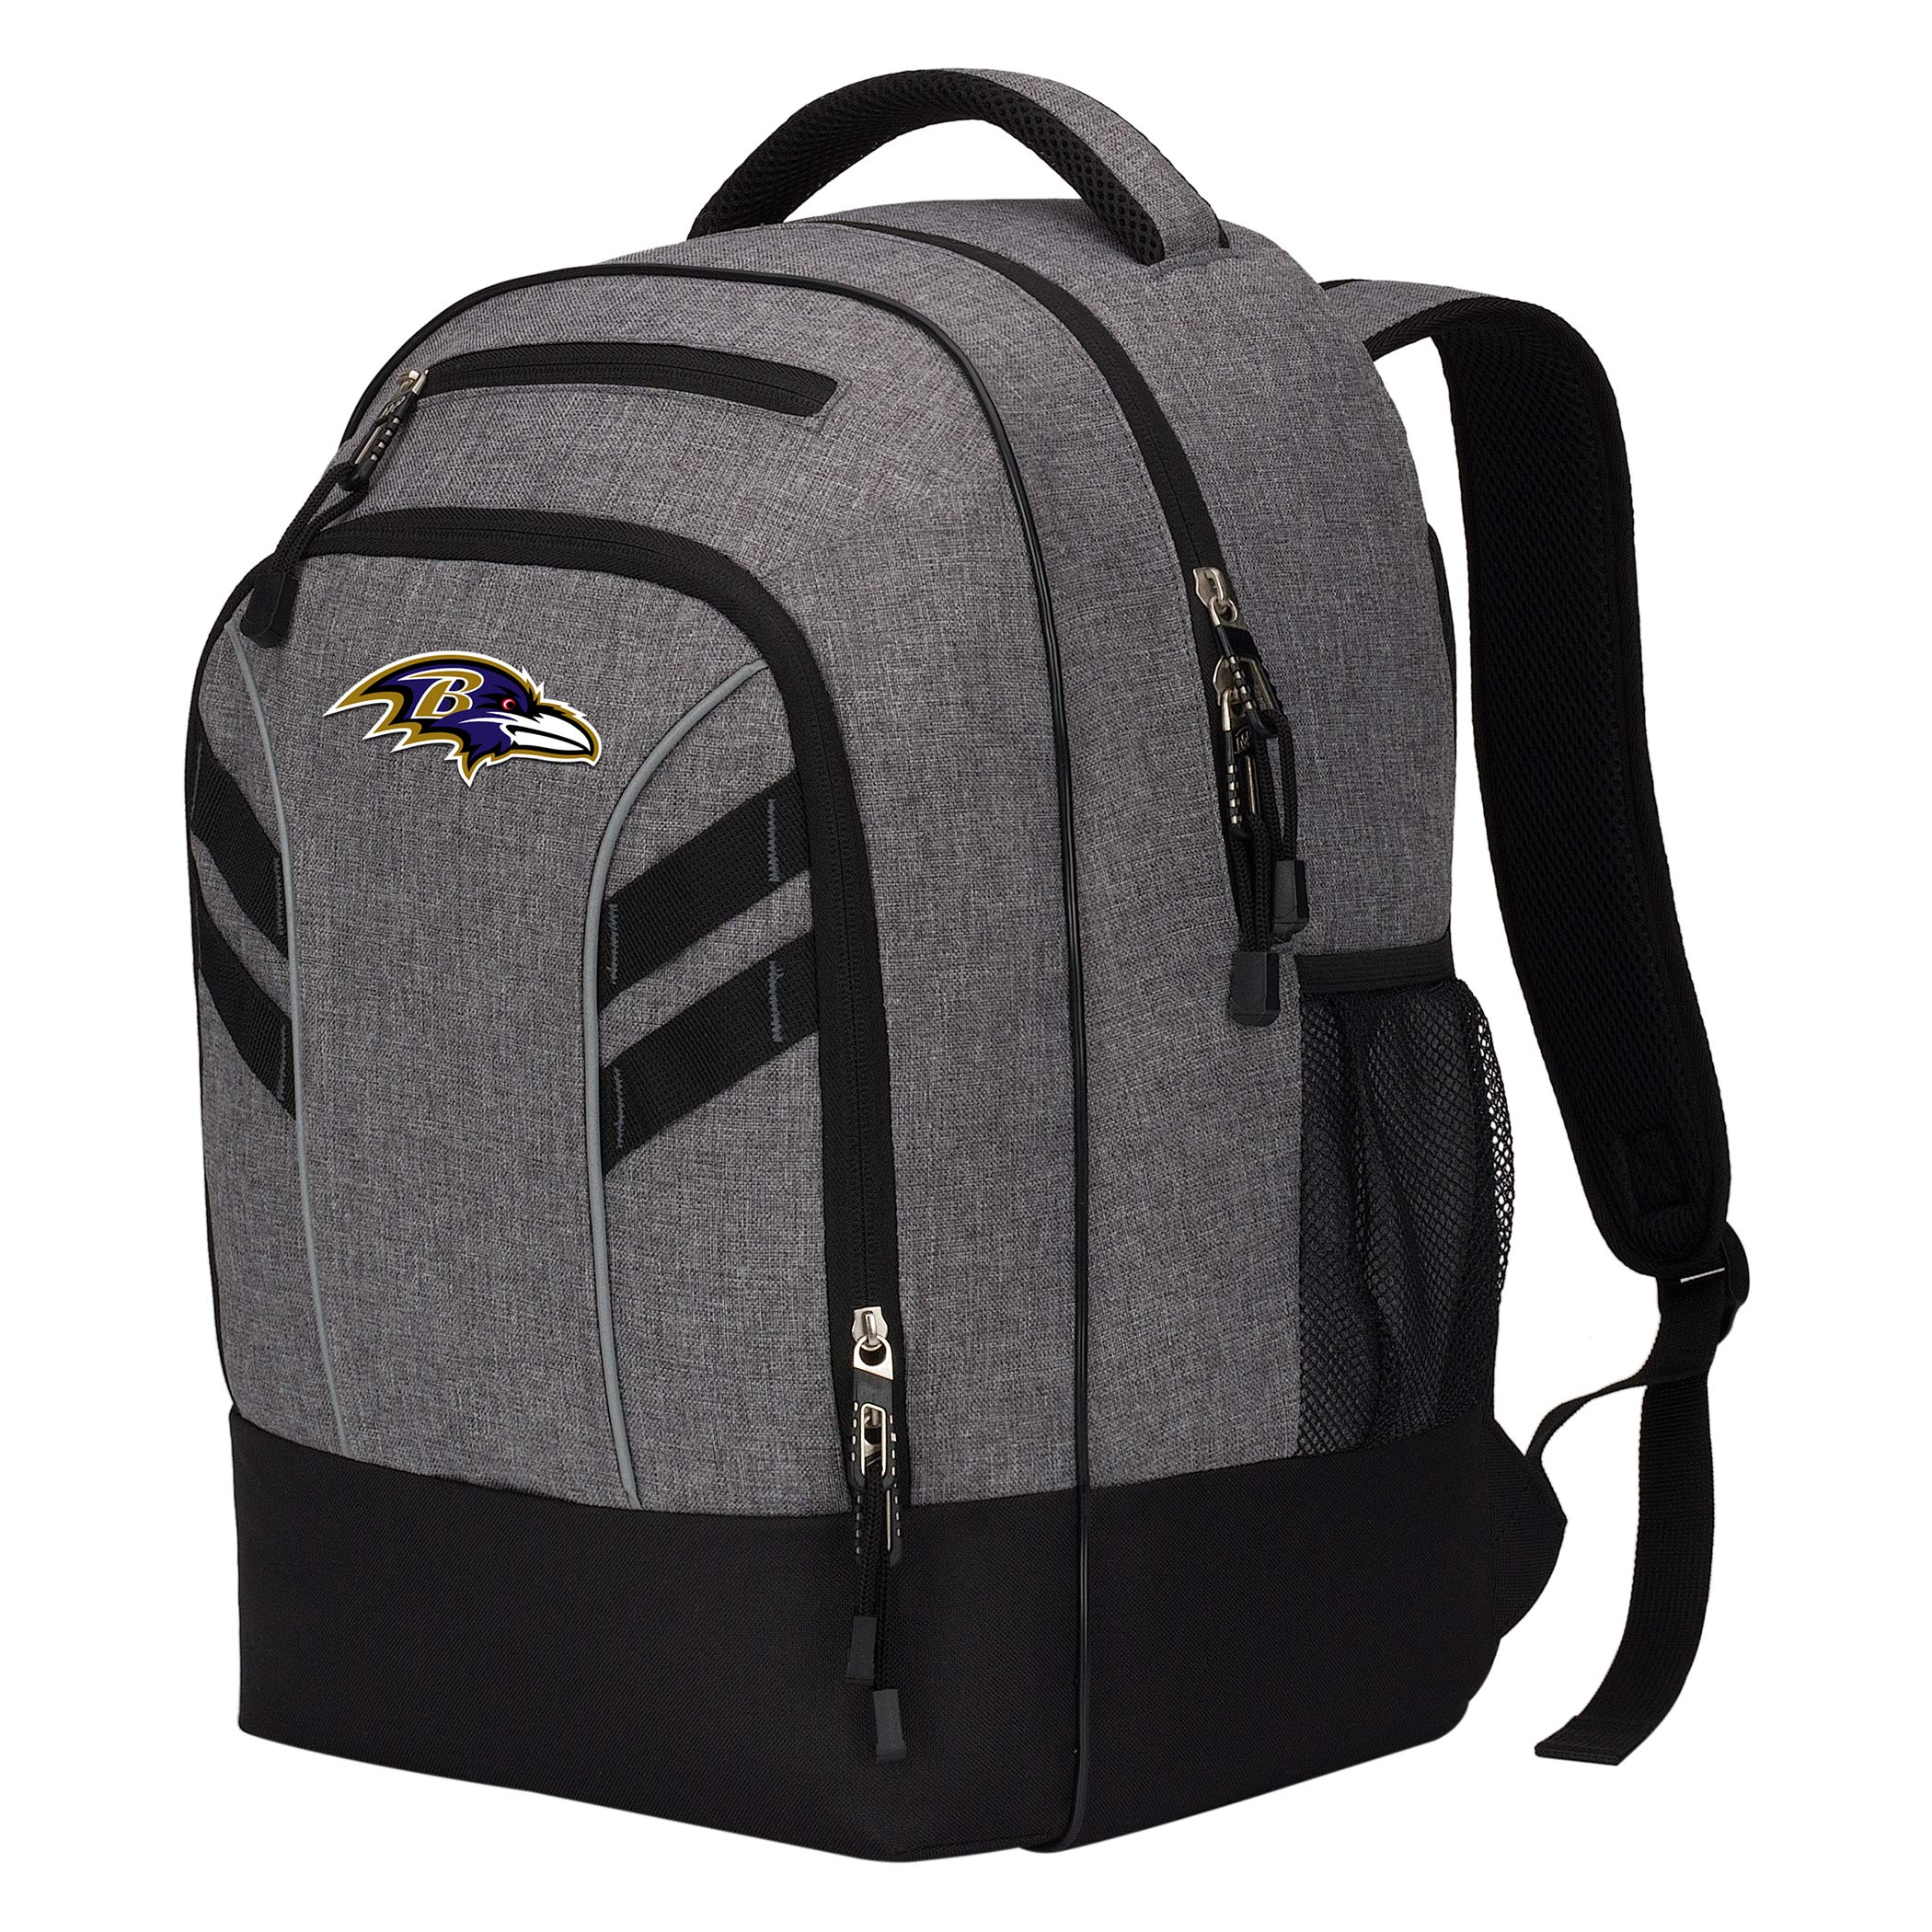 The Northwest Company Officially Licensed NFL Baltimore Ravens Razor Backpack, Black, One Size by The Northwest Company